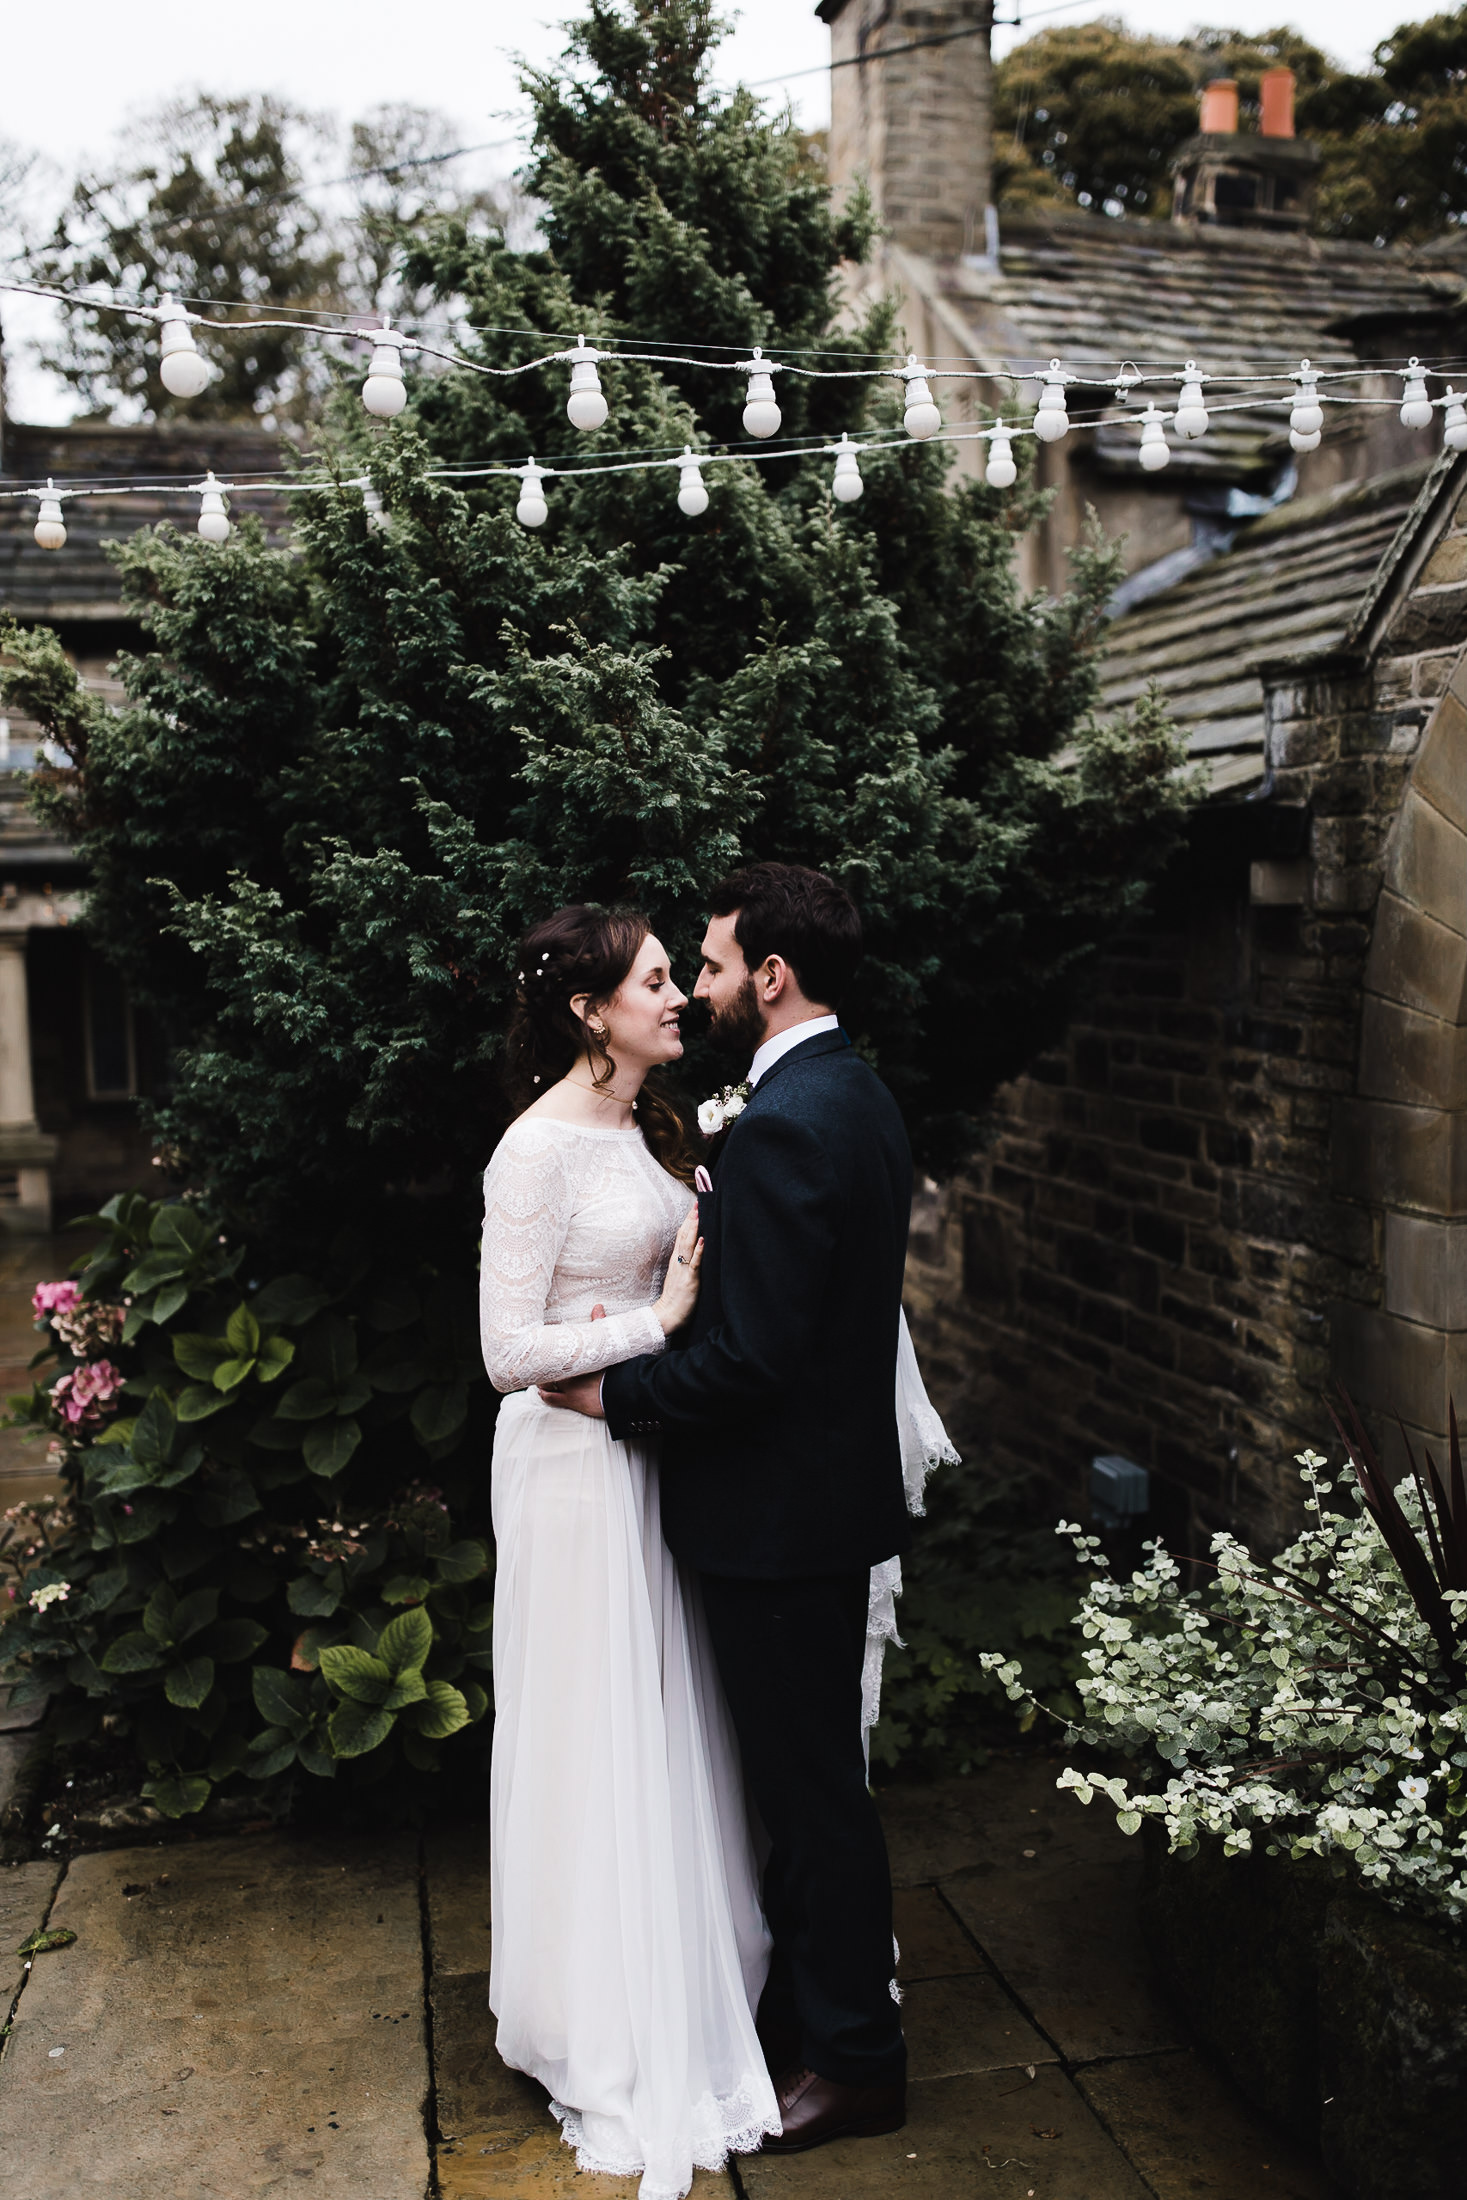 Holdsworth_House_Yorkshire_Wedding_051.jpg